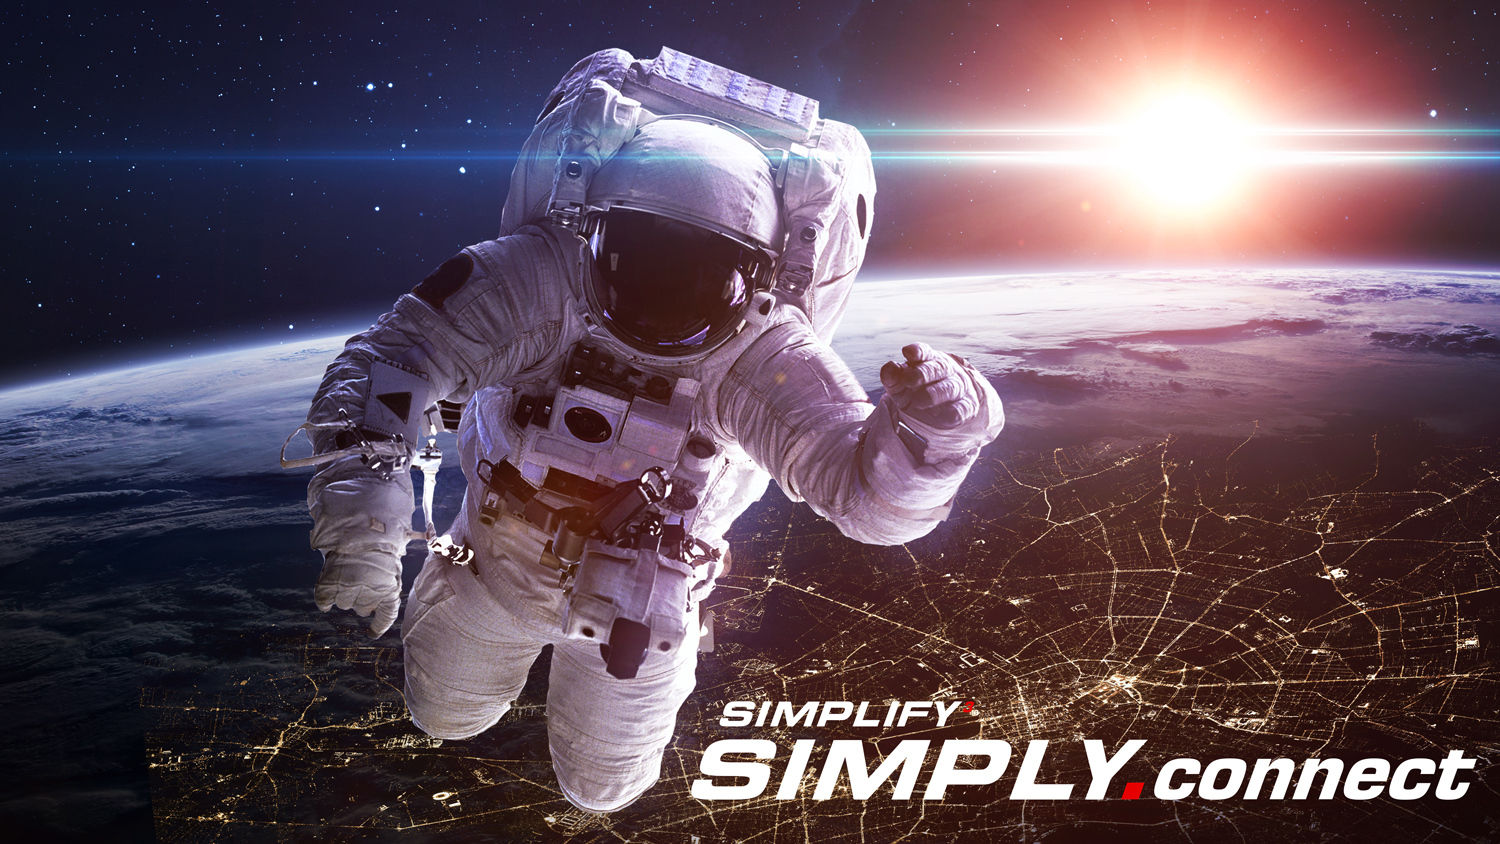 Simply.connect - Astronauts